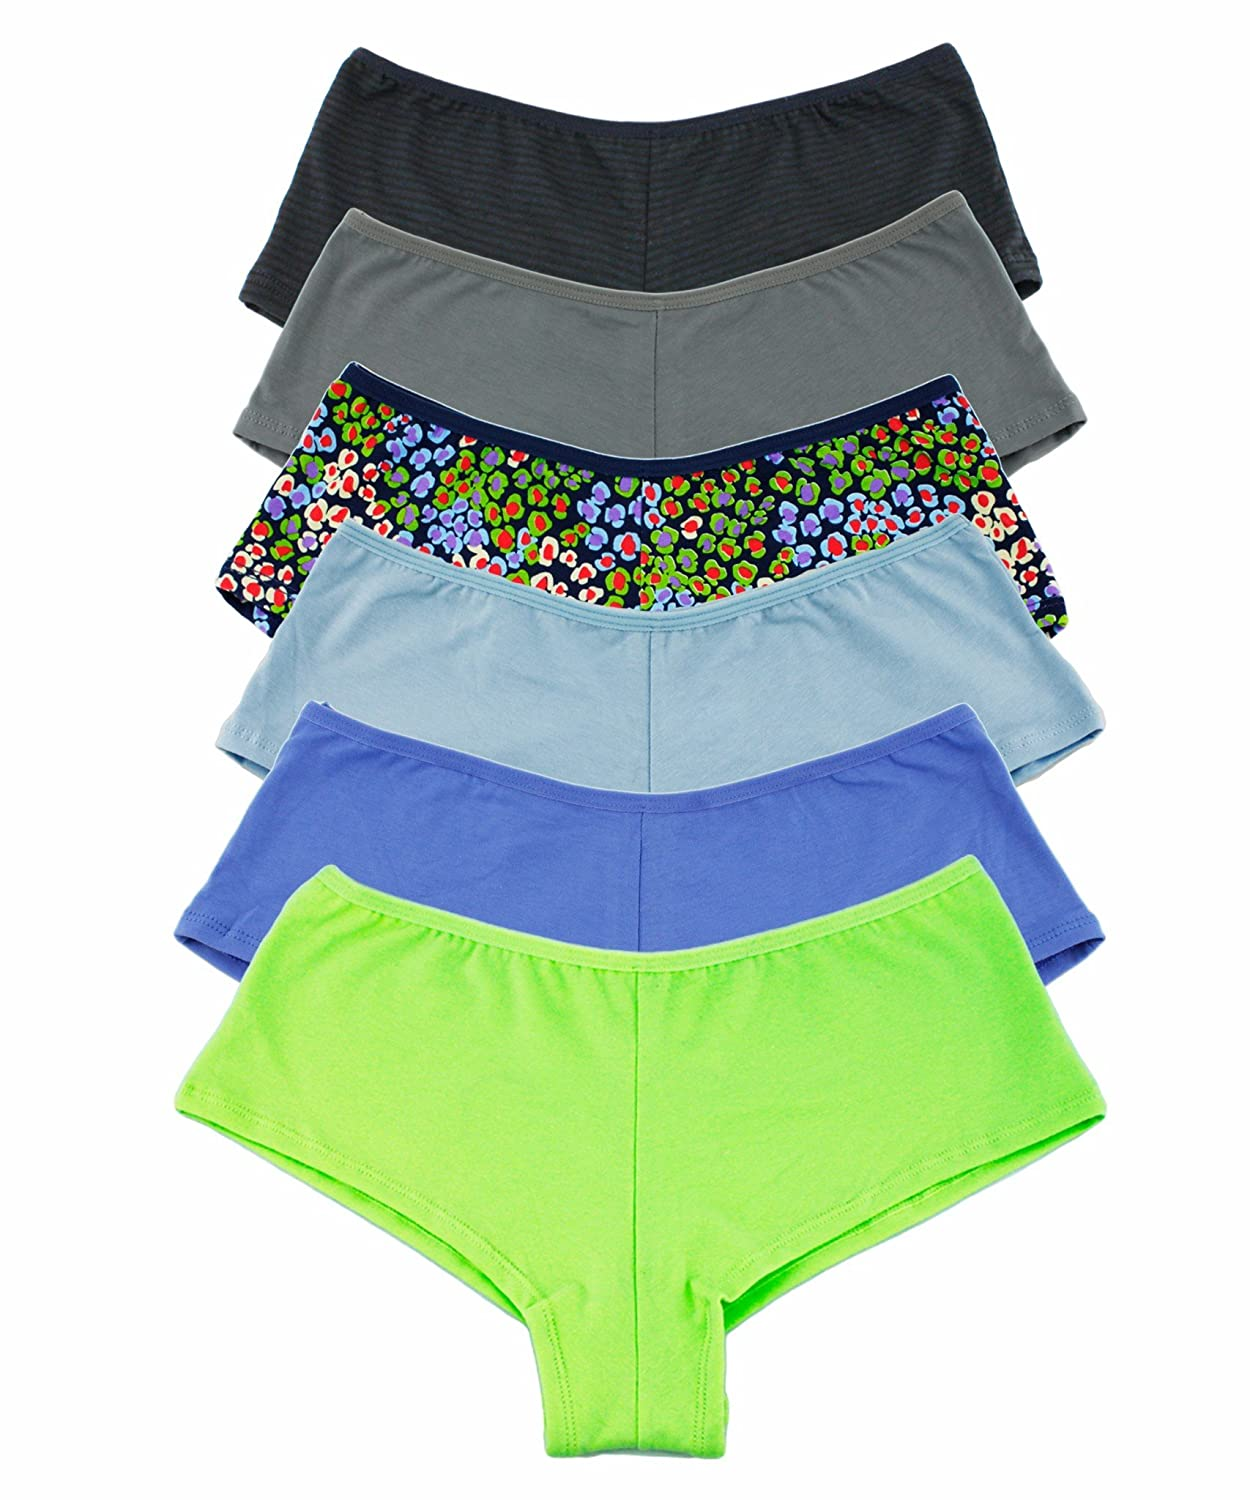 3483455d76 Package of 6 panties assorted prints. Trendy fashion prints